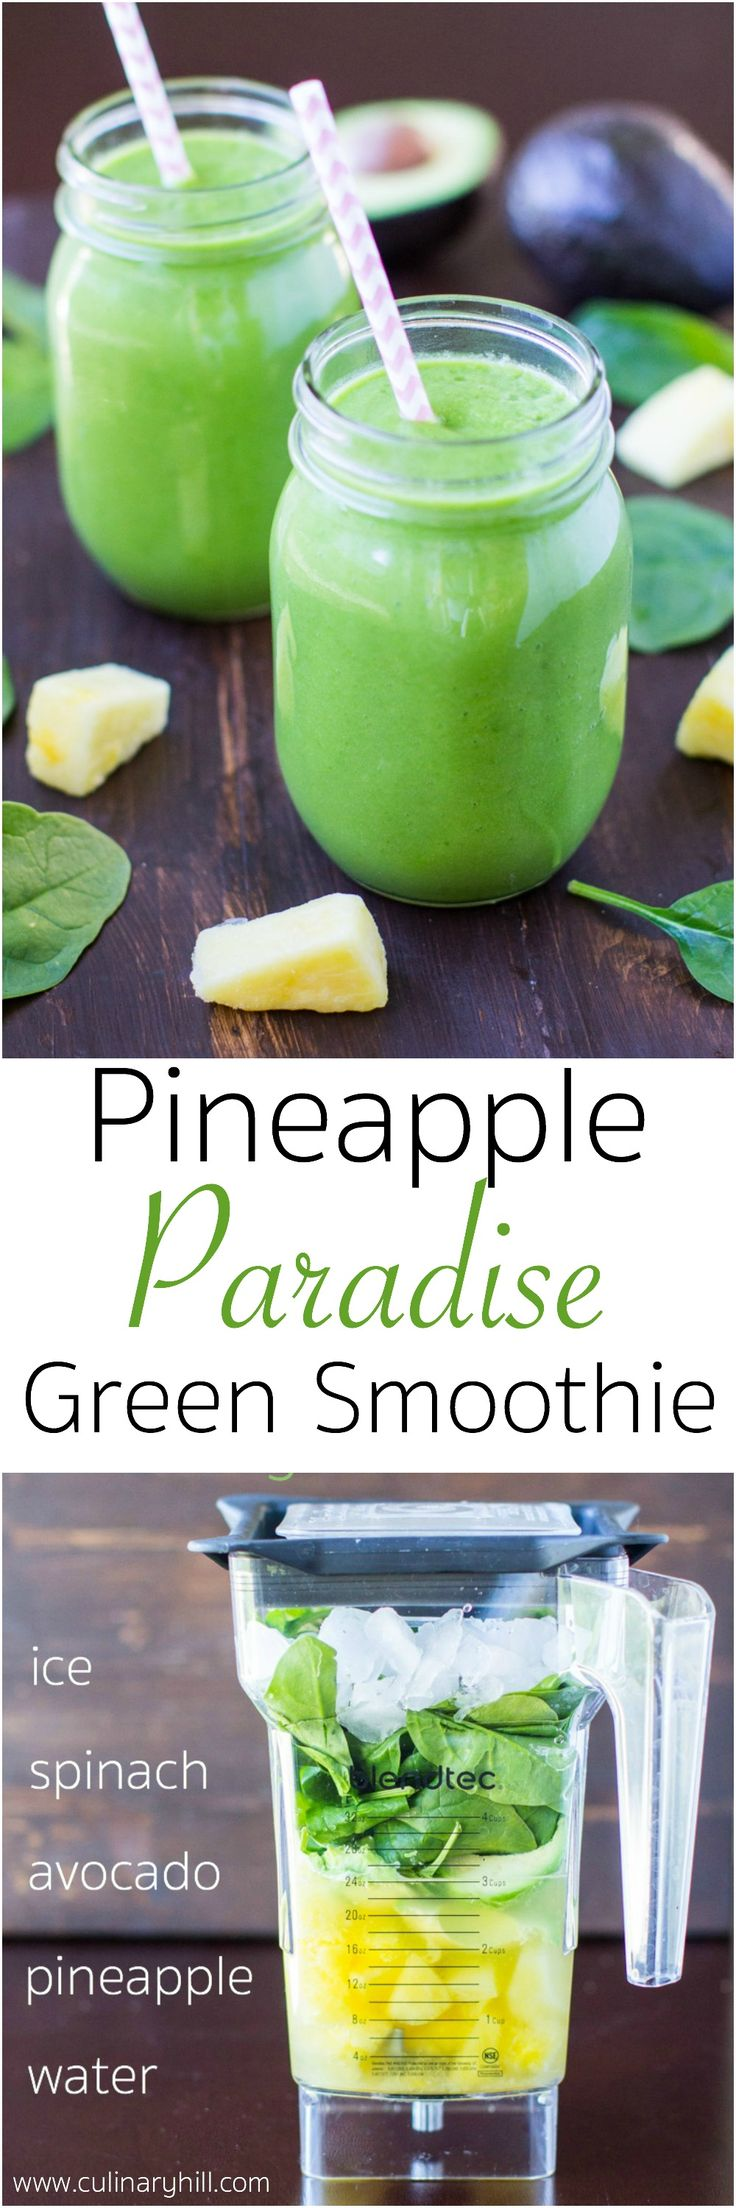 A sweet and fruity green smoothie filled with golden pineapple, smooth avocado, and fresh spinach. An easy way to pack more fruits and veggies into your diet every day!